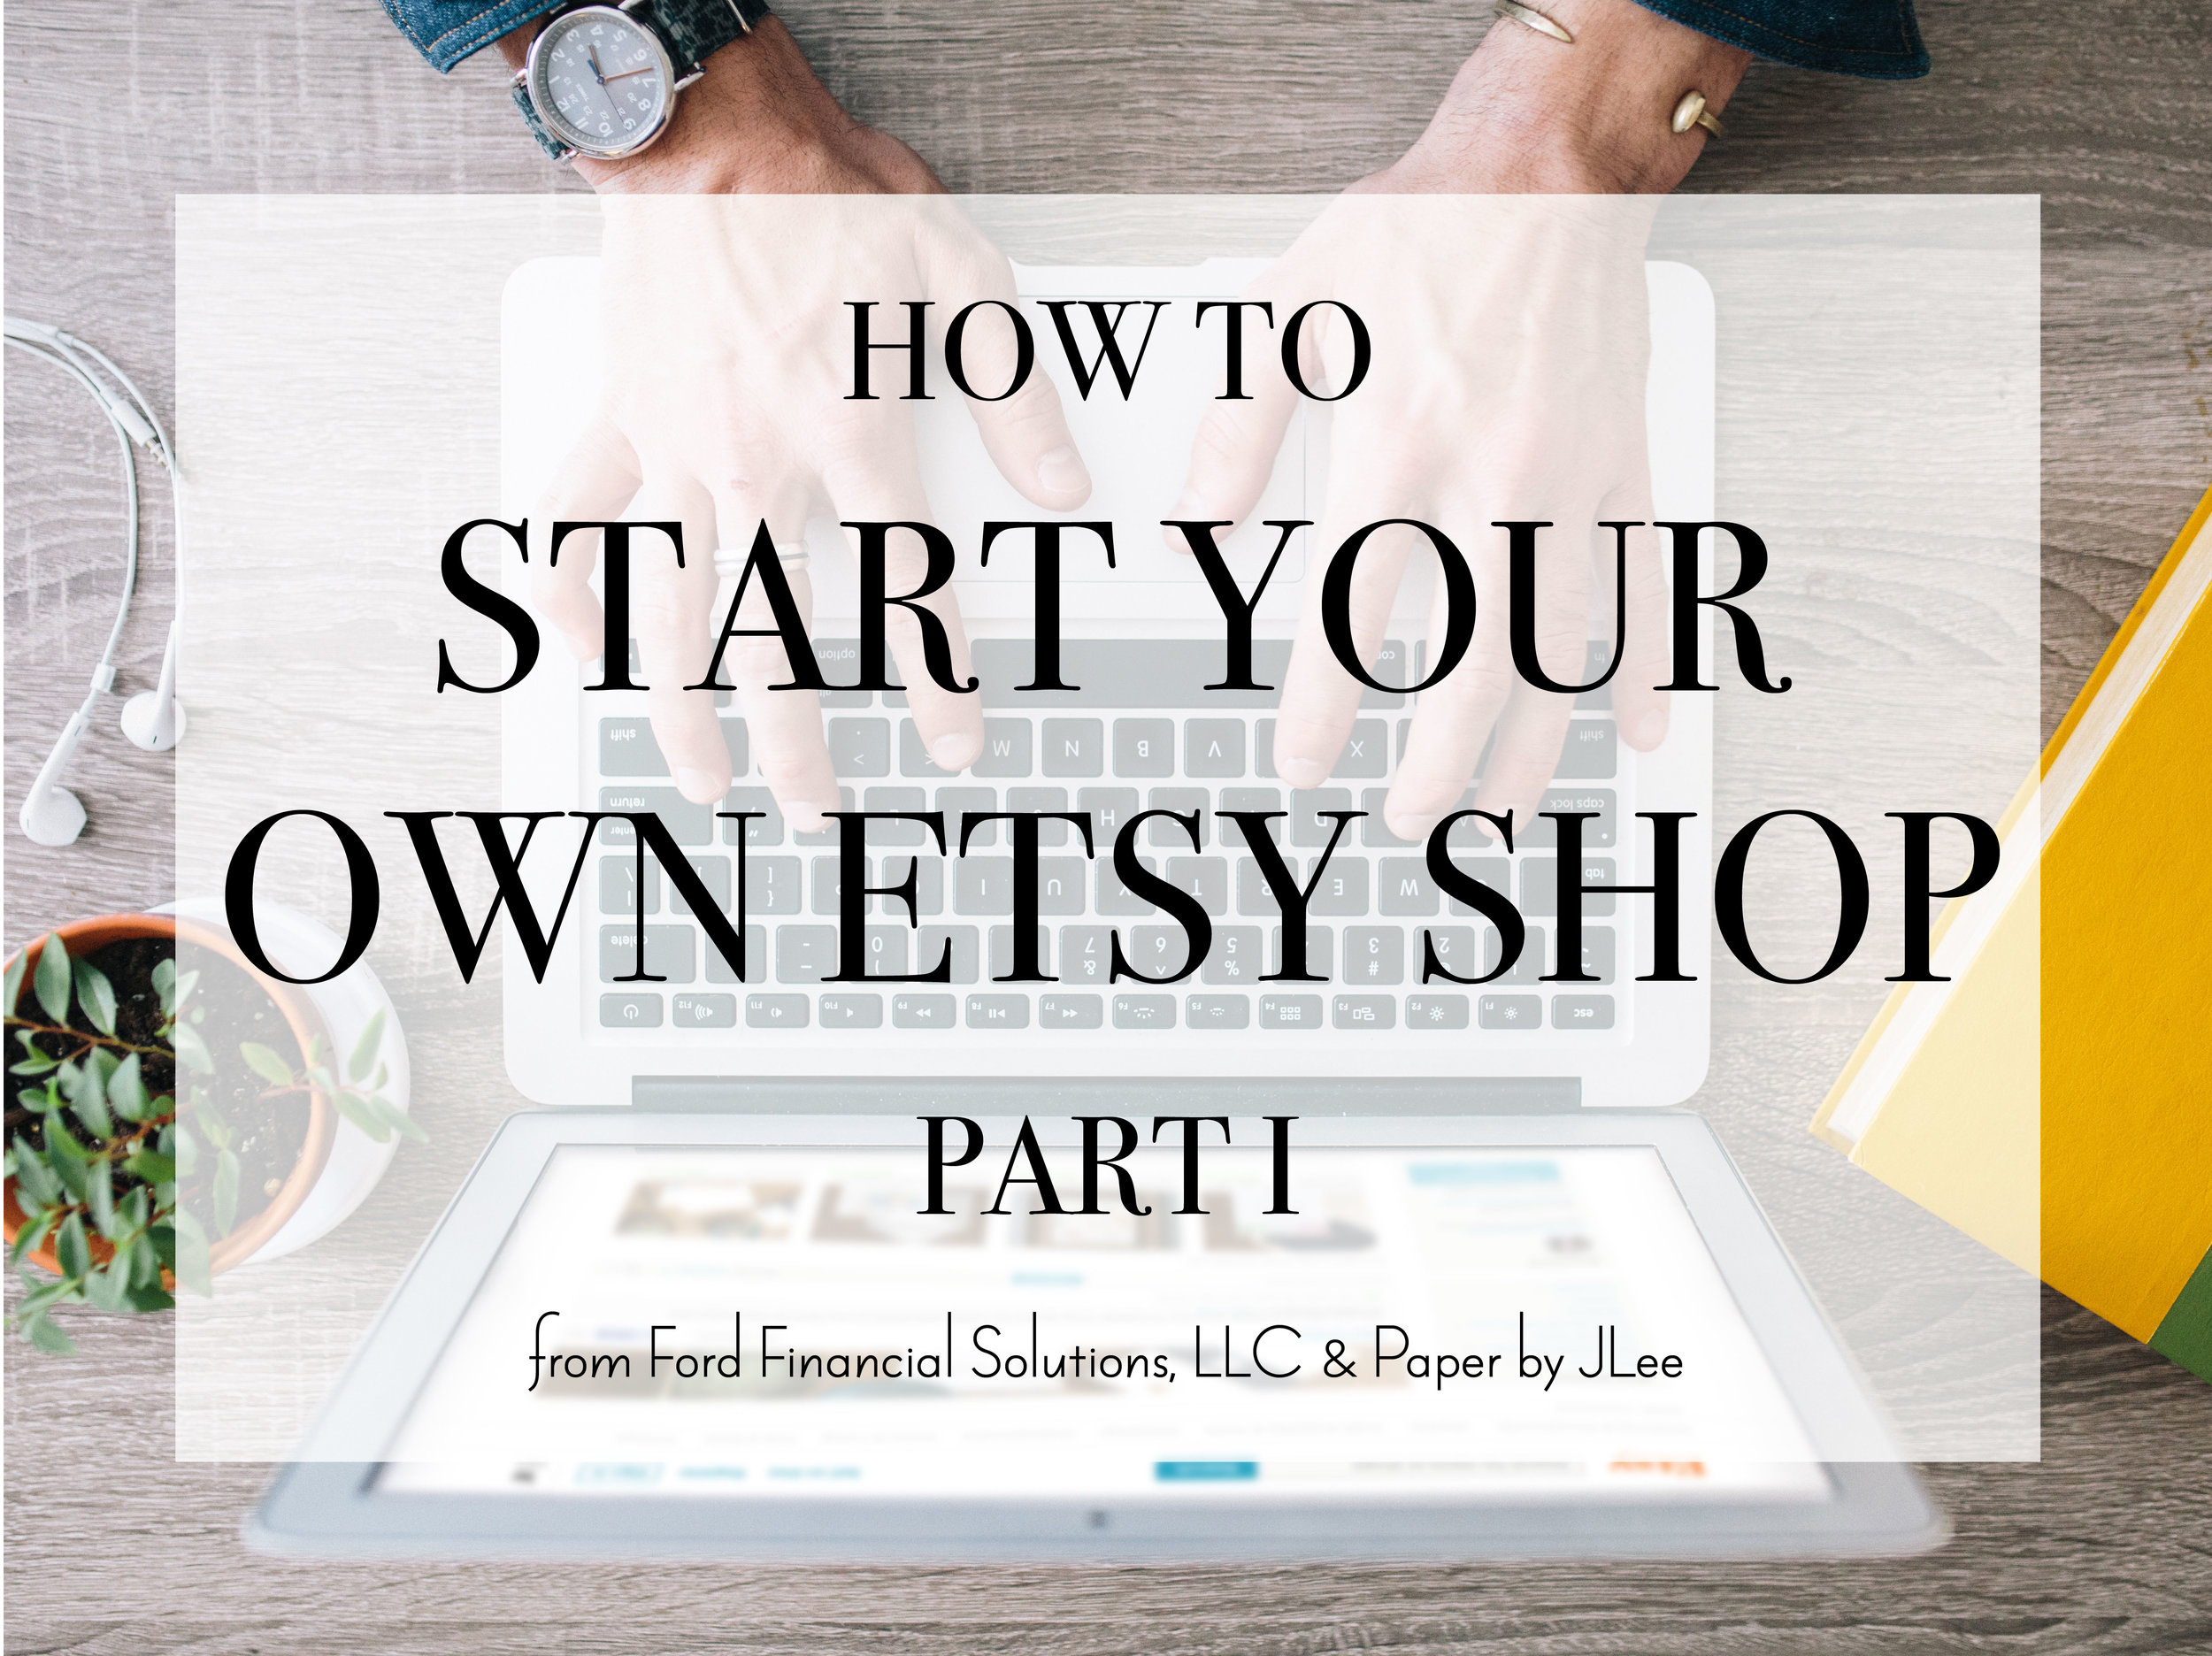 How to Start Your Own Etsy Shop